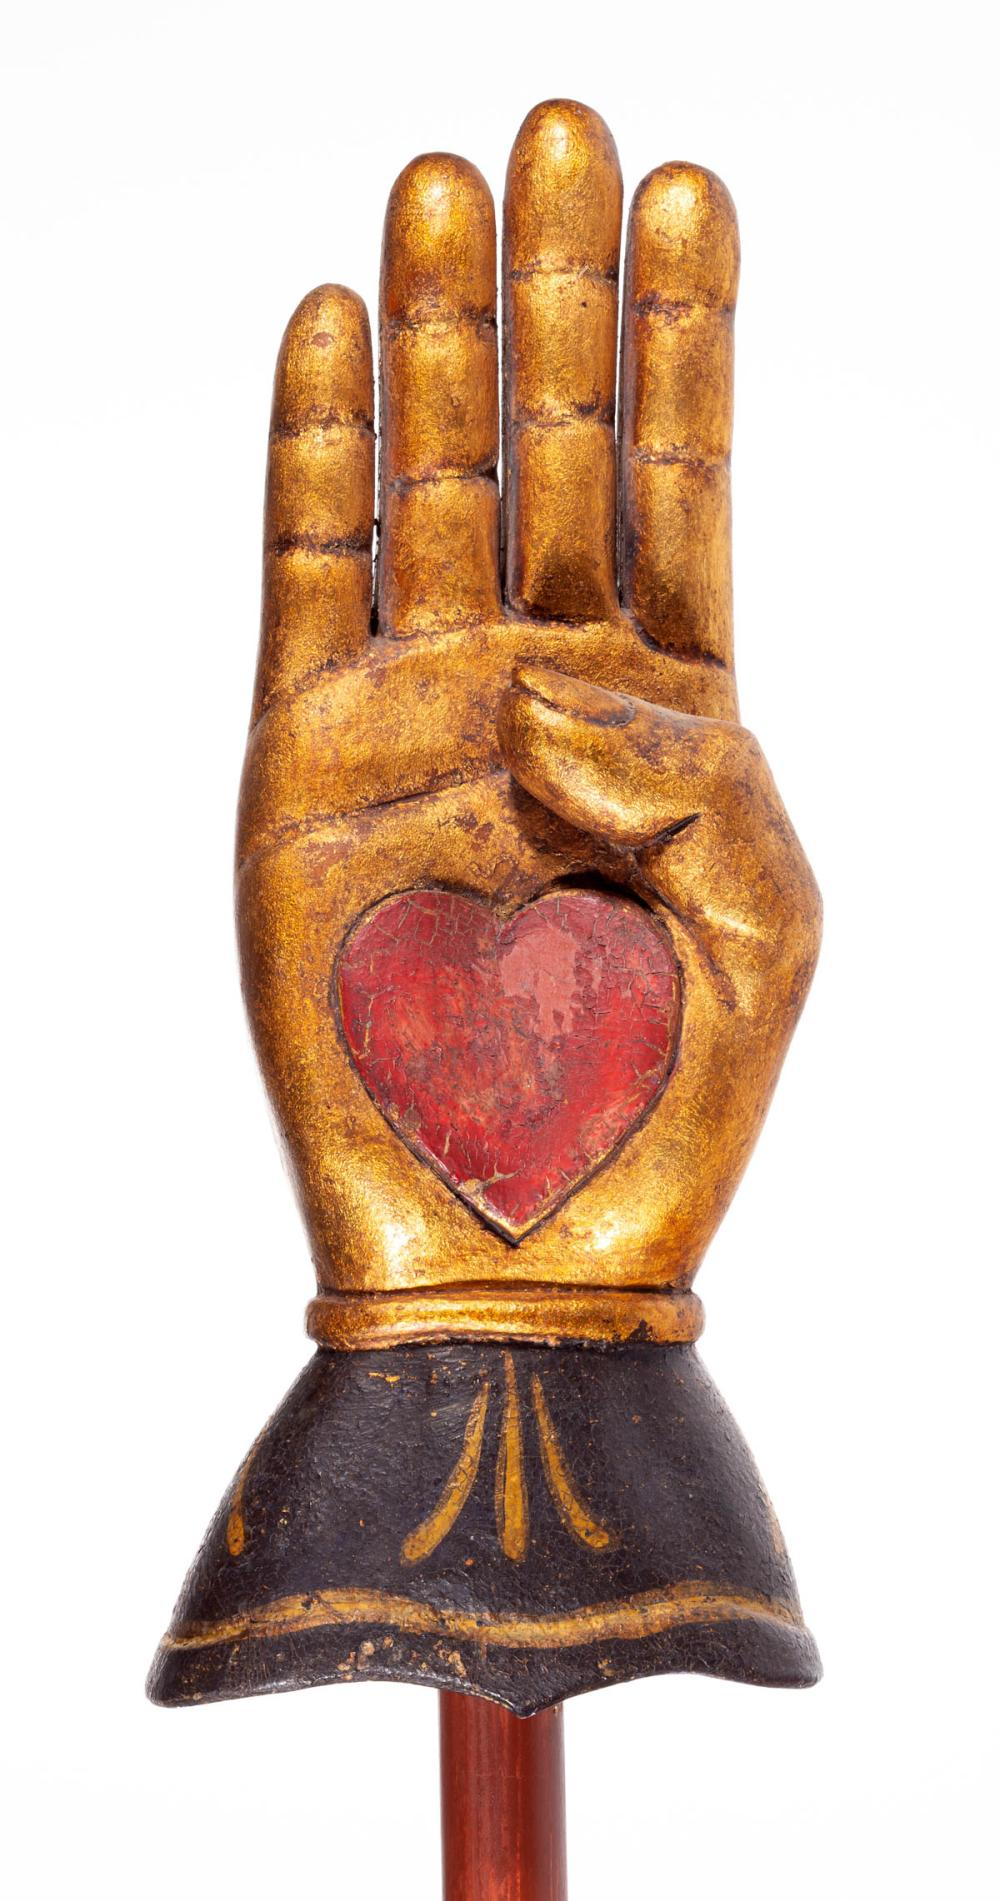 AMERICAN FOLK ART CARVED AND PAINTED ODD FELLOWS HEART-IN-HAND STAFF